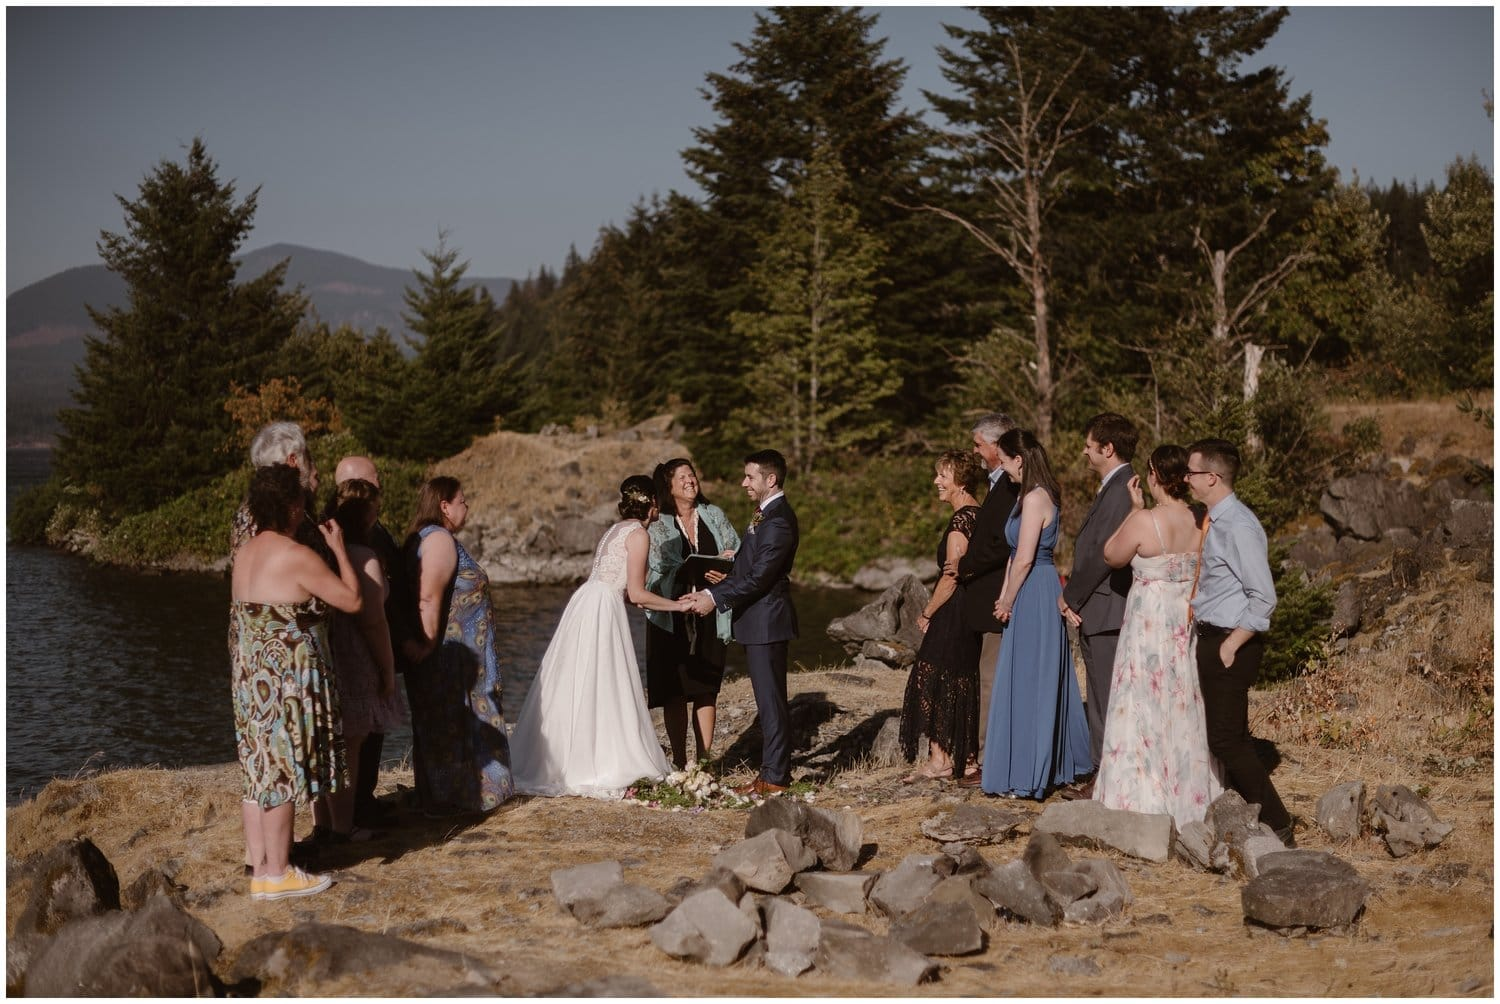 A bride and groom have an intimate ceremony by a body of water.